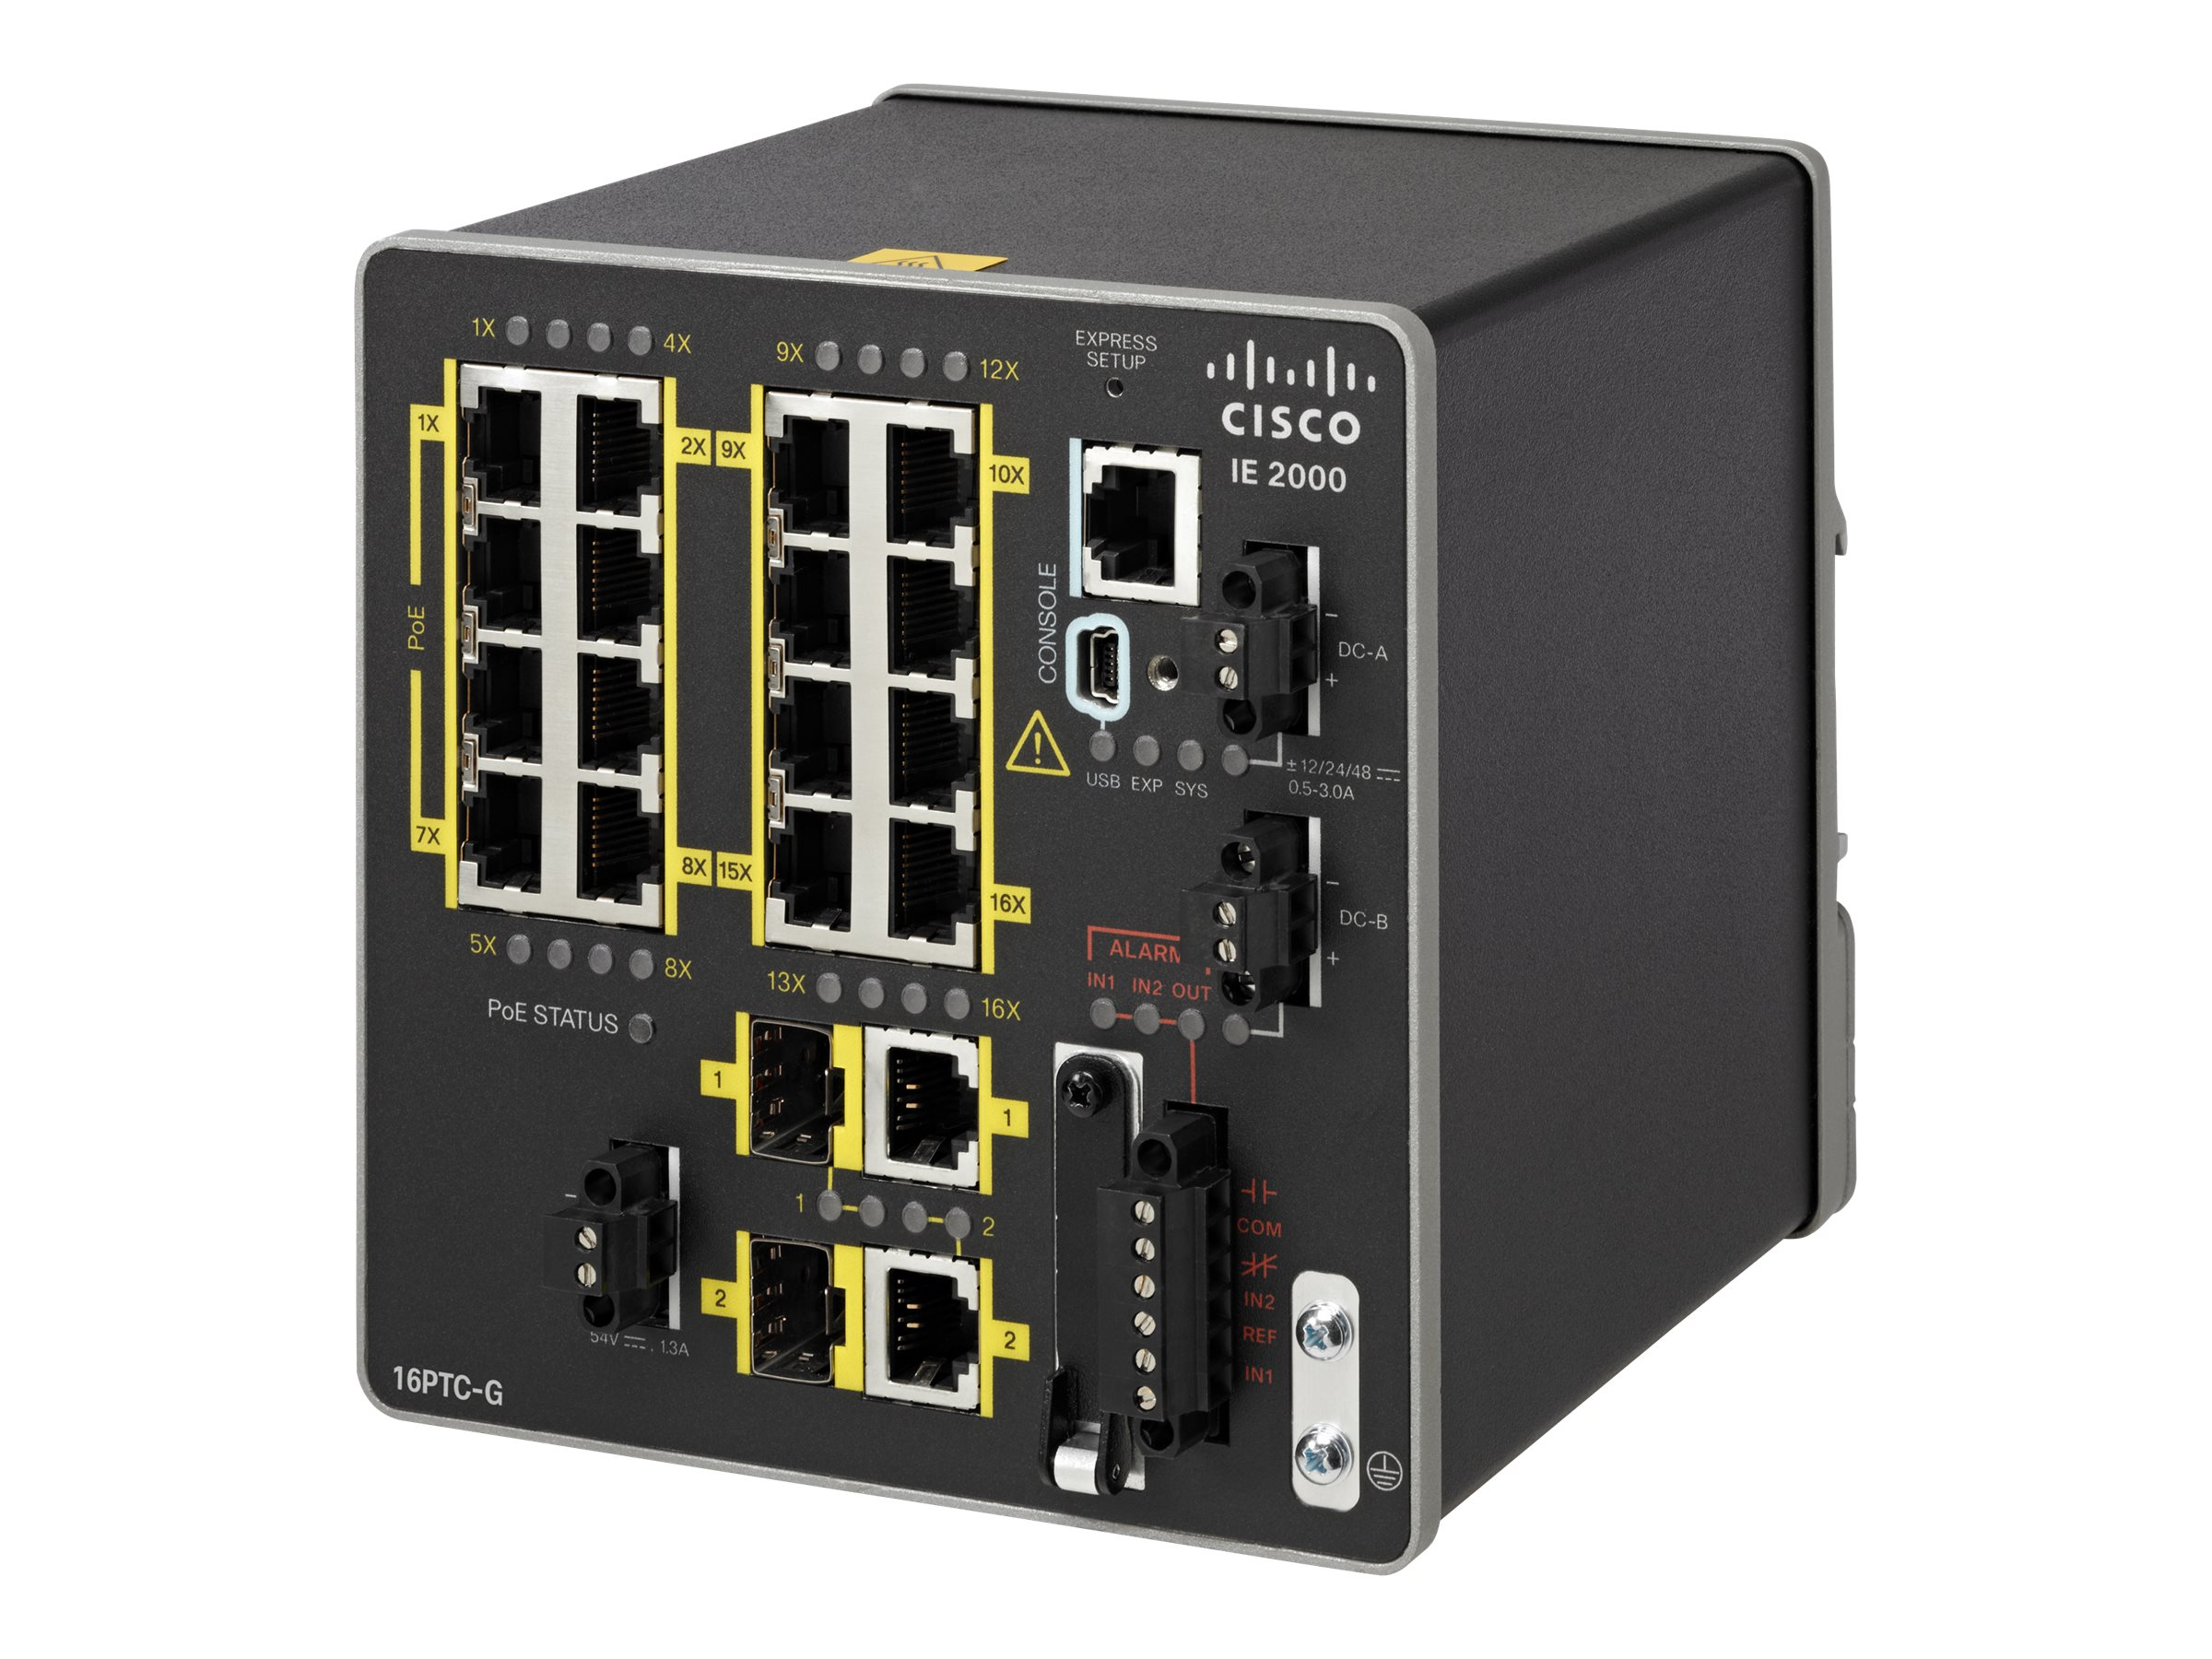 Cisco IE-2000-16PTC-G-NX Image 1